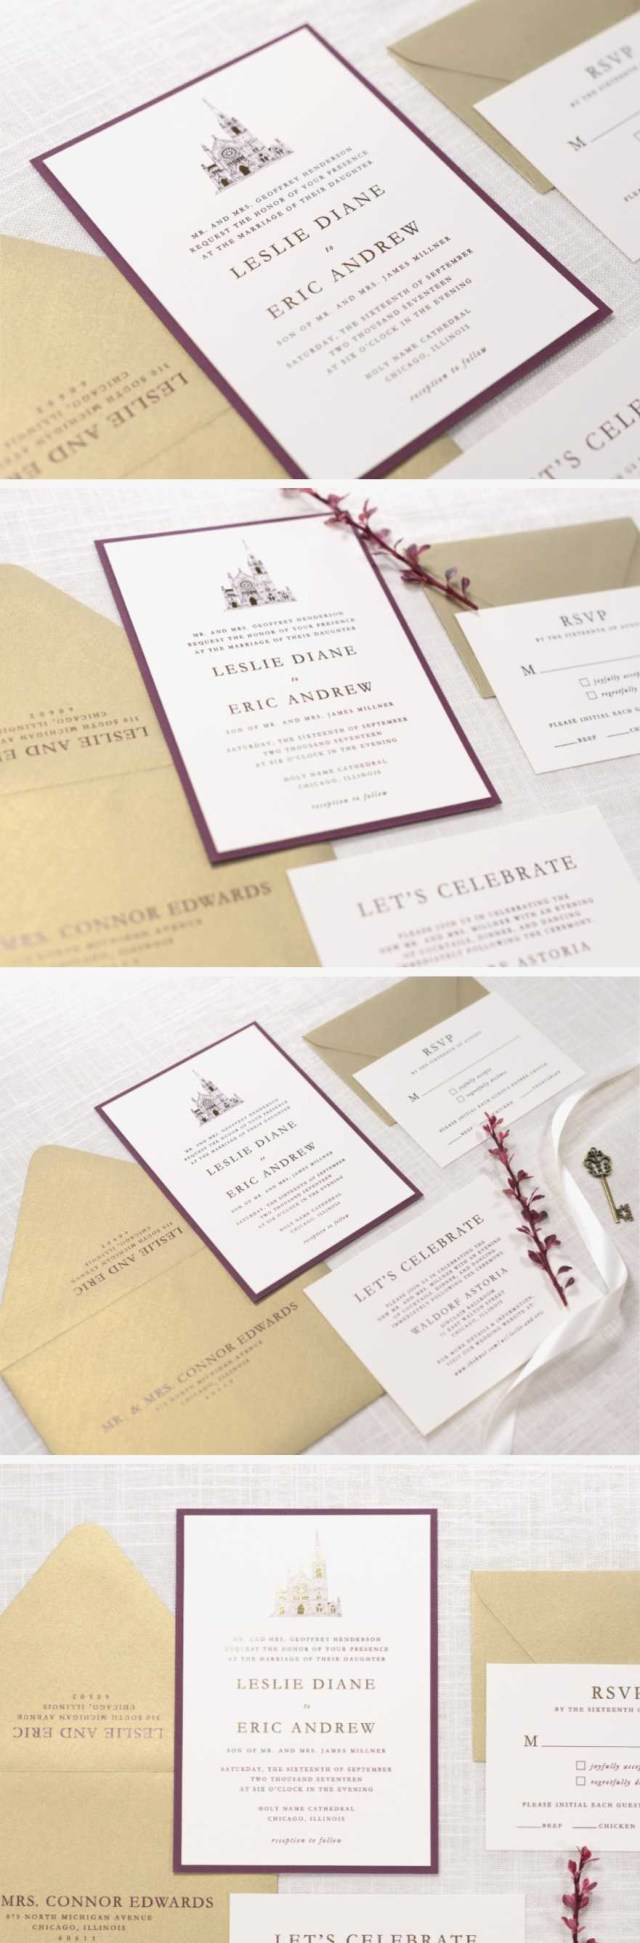 Discounted Wedding Invitations Inspirational Vineyard Wedding Invitation Wedding Theme Ideas